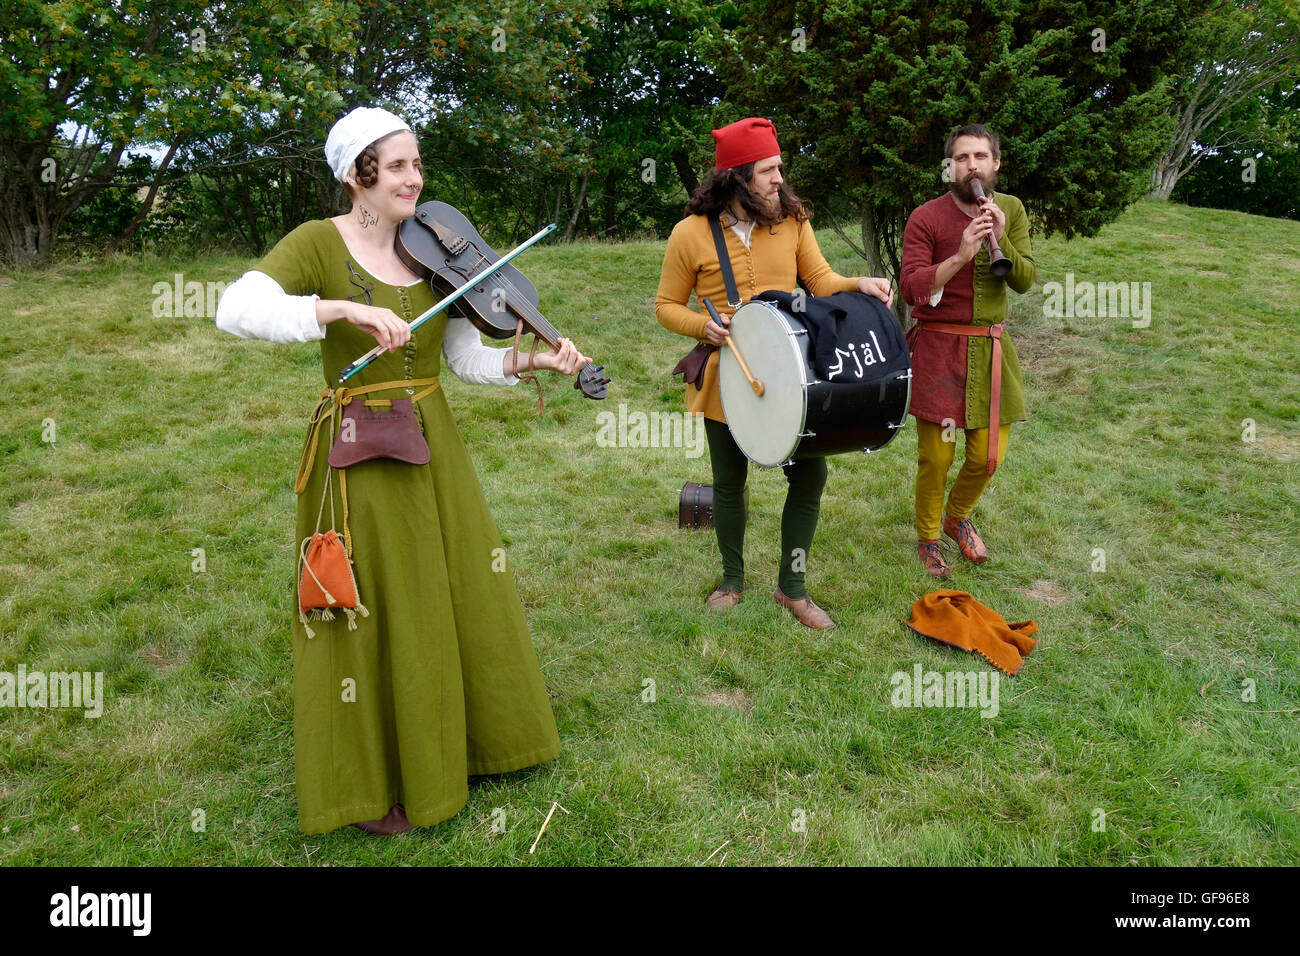 Medieval music trio band performs outdoors - Stock Image